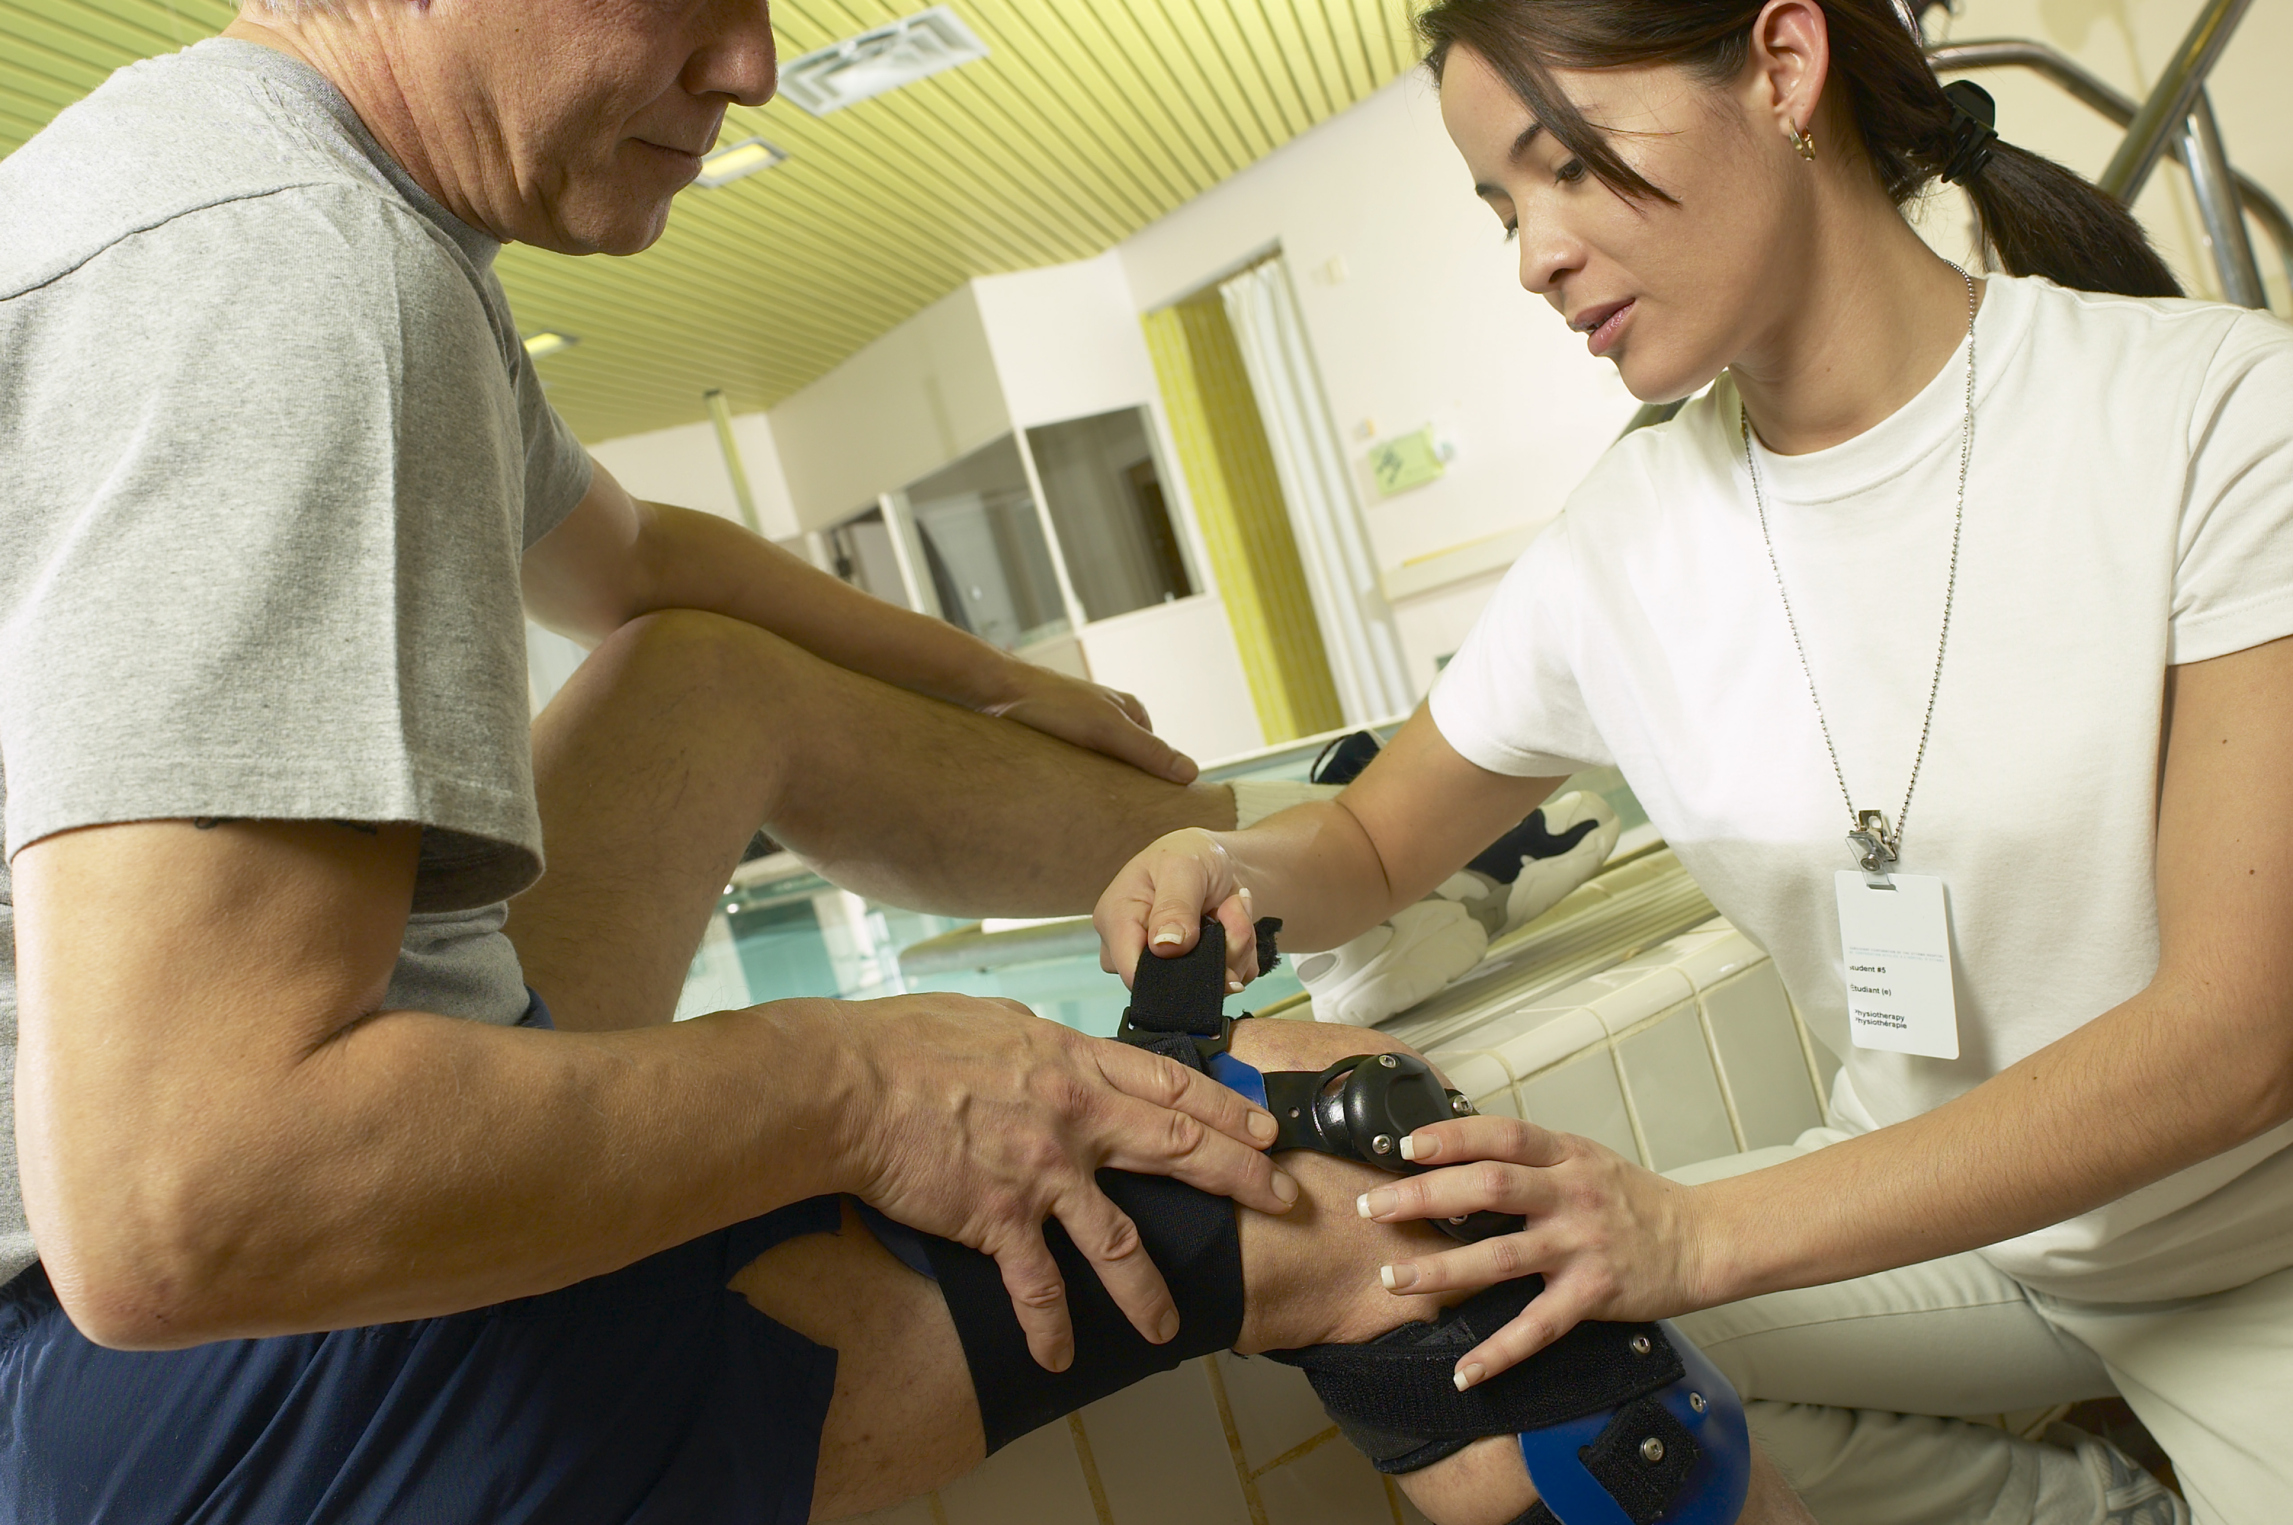 Job Description For An Orthopedic Physician Assistant